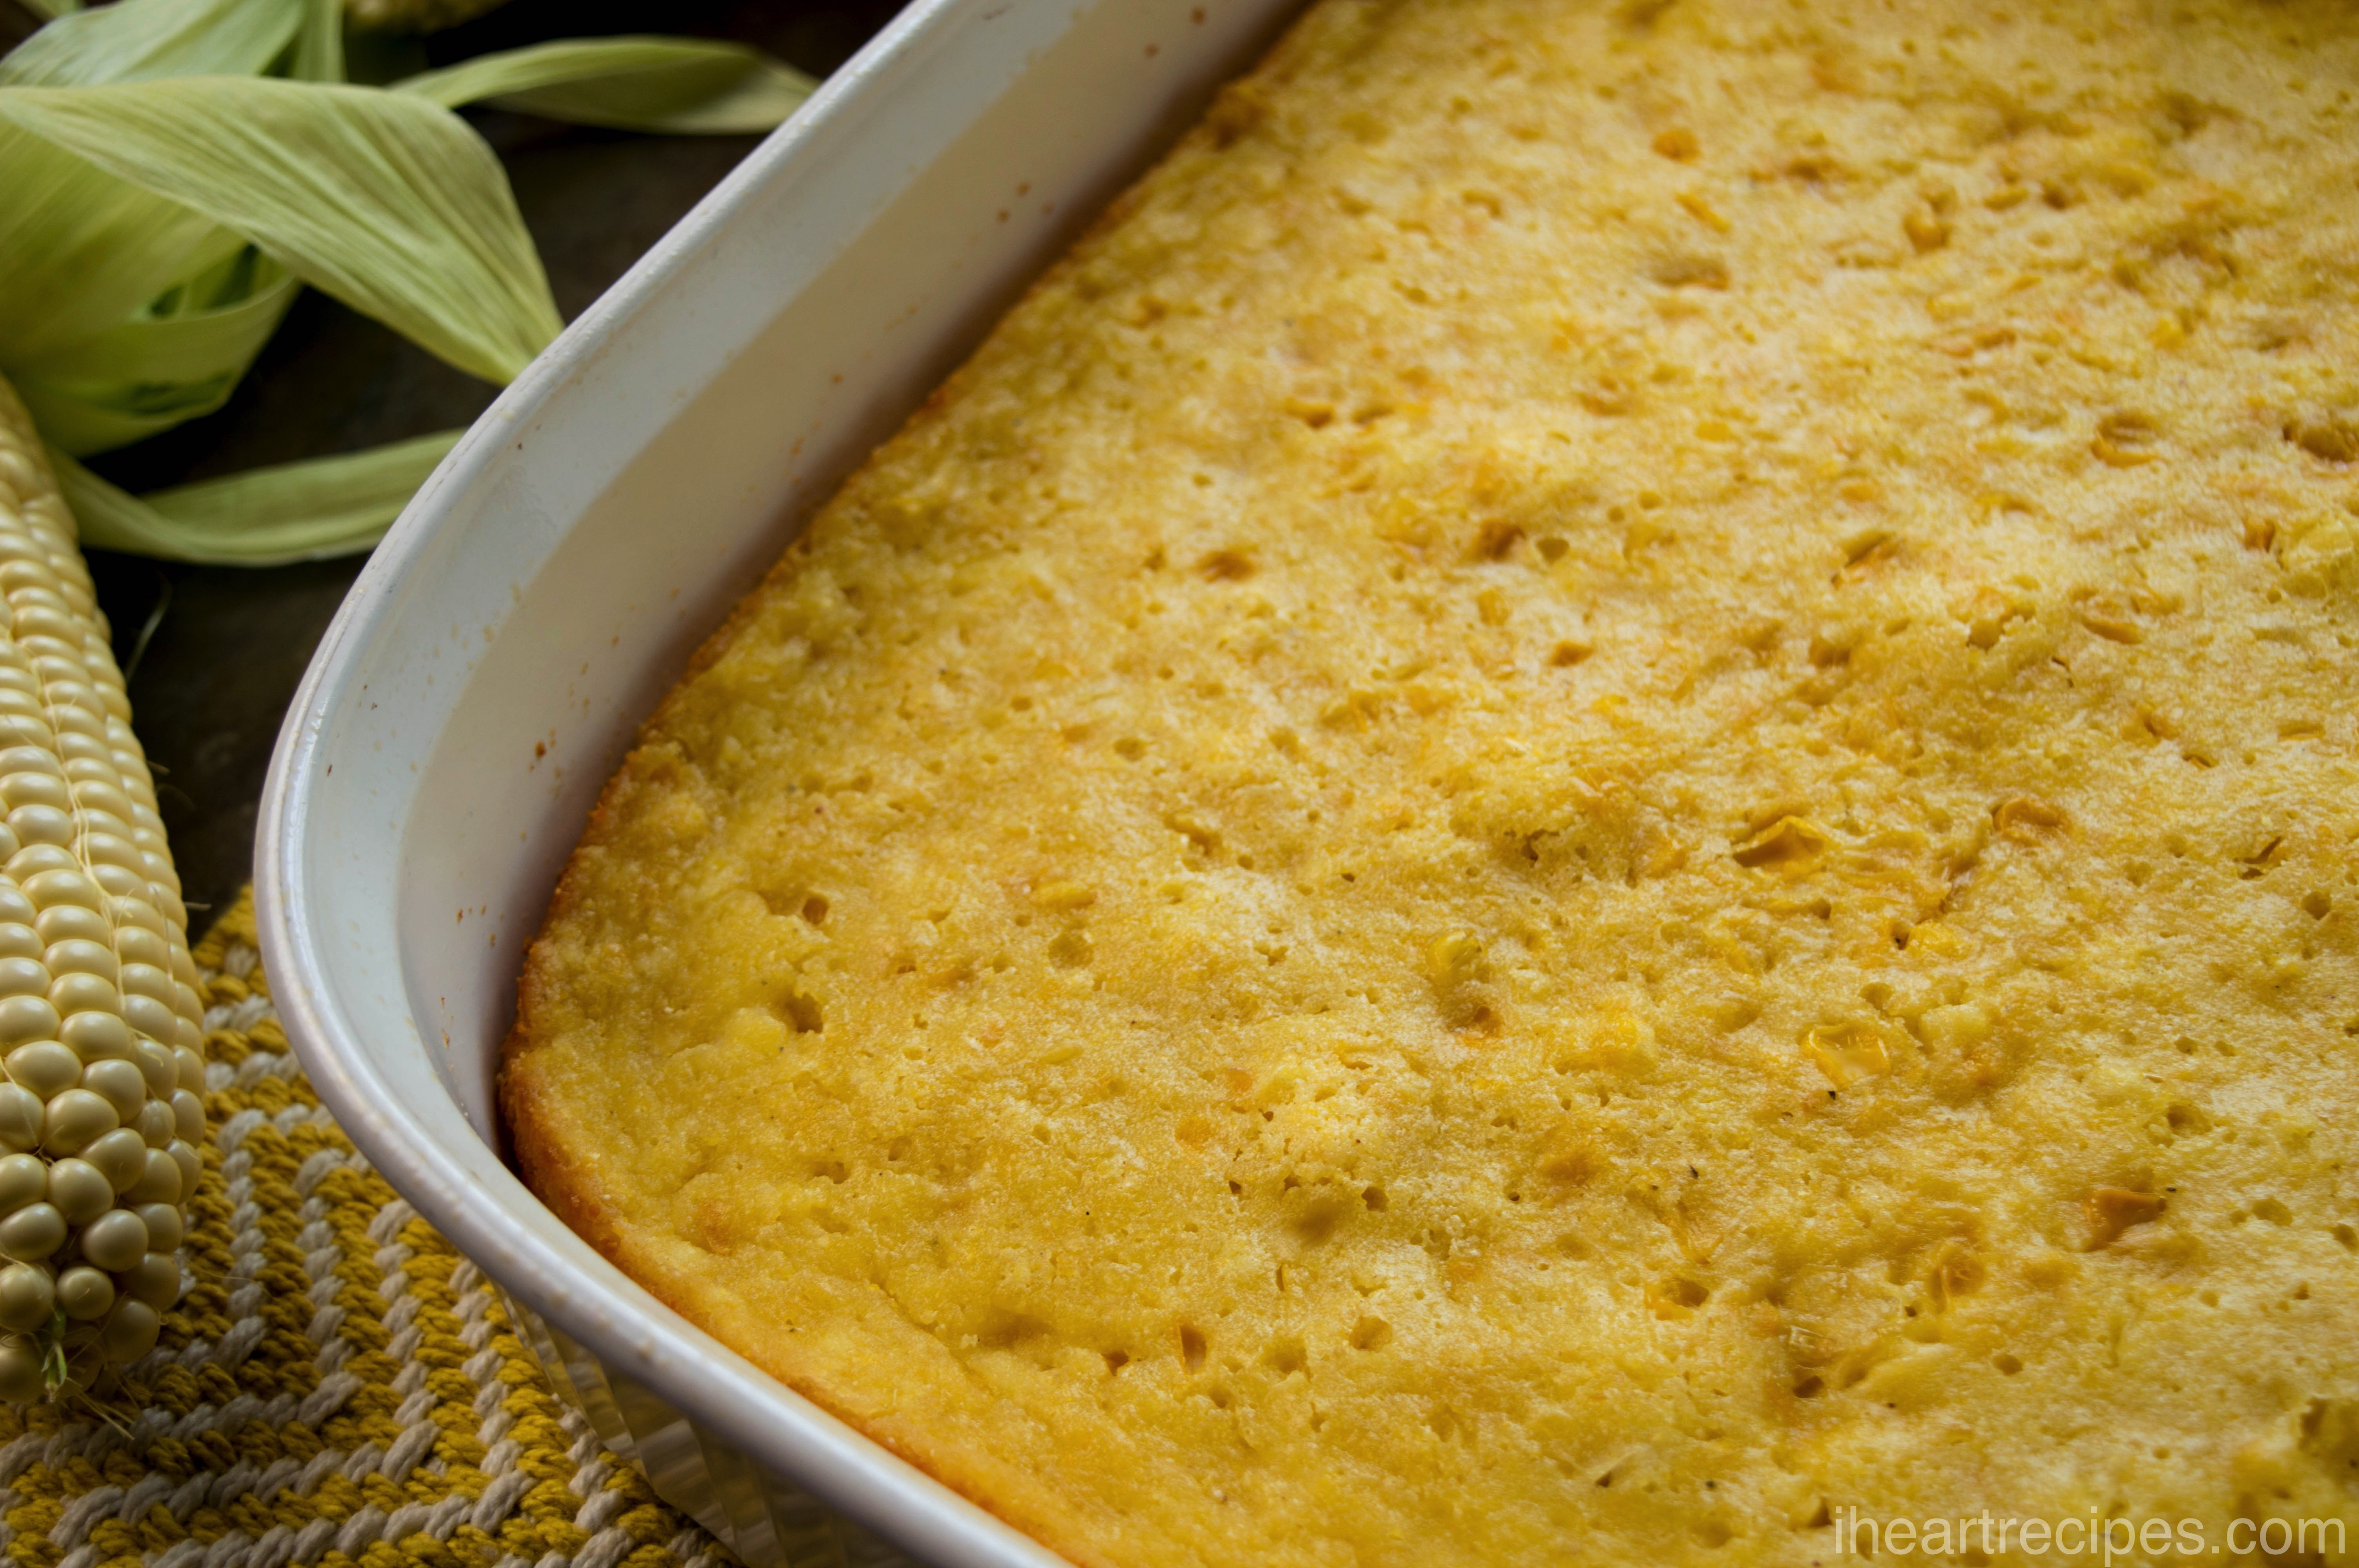 Made with cornbread, this side dish can be sweet and savory at the same time.